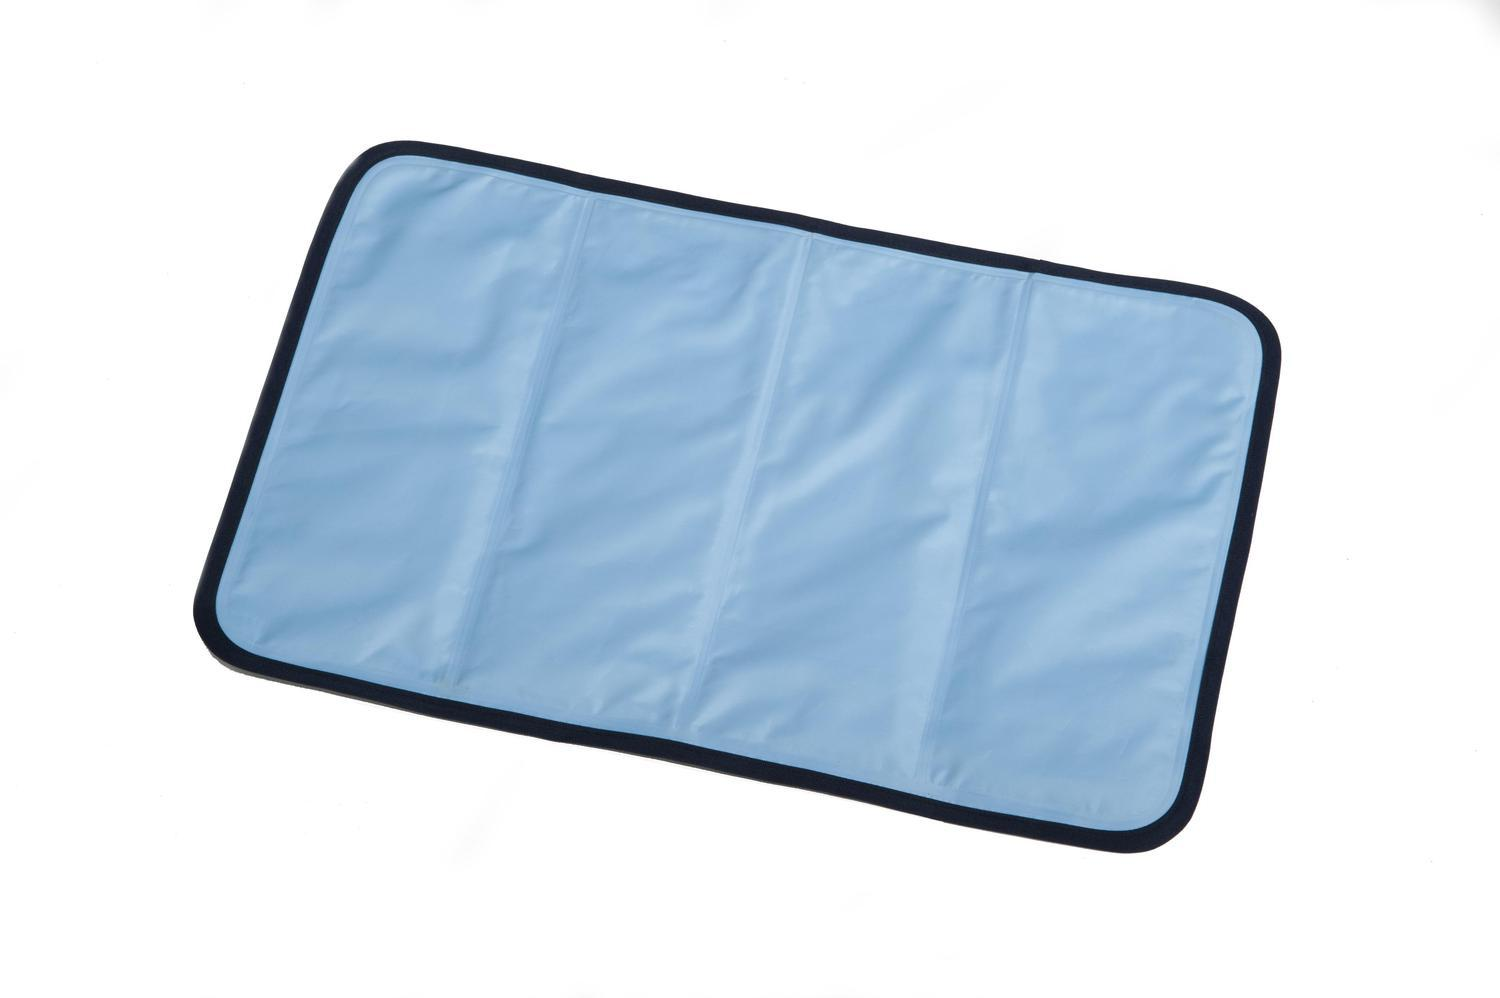 PCM Cooling Pad Pillow Topper from SlumberSlumber.com